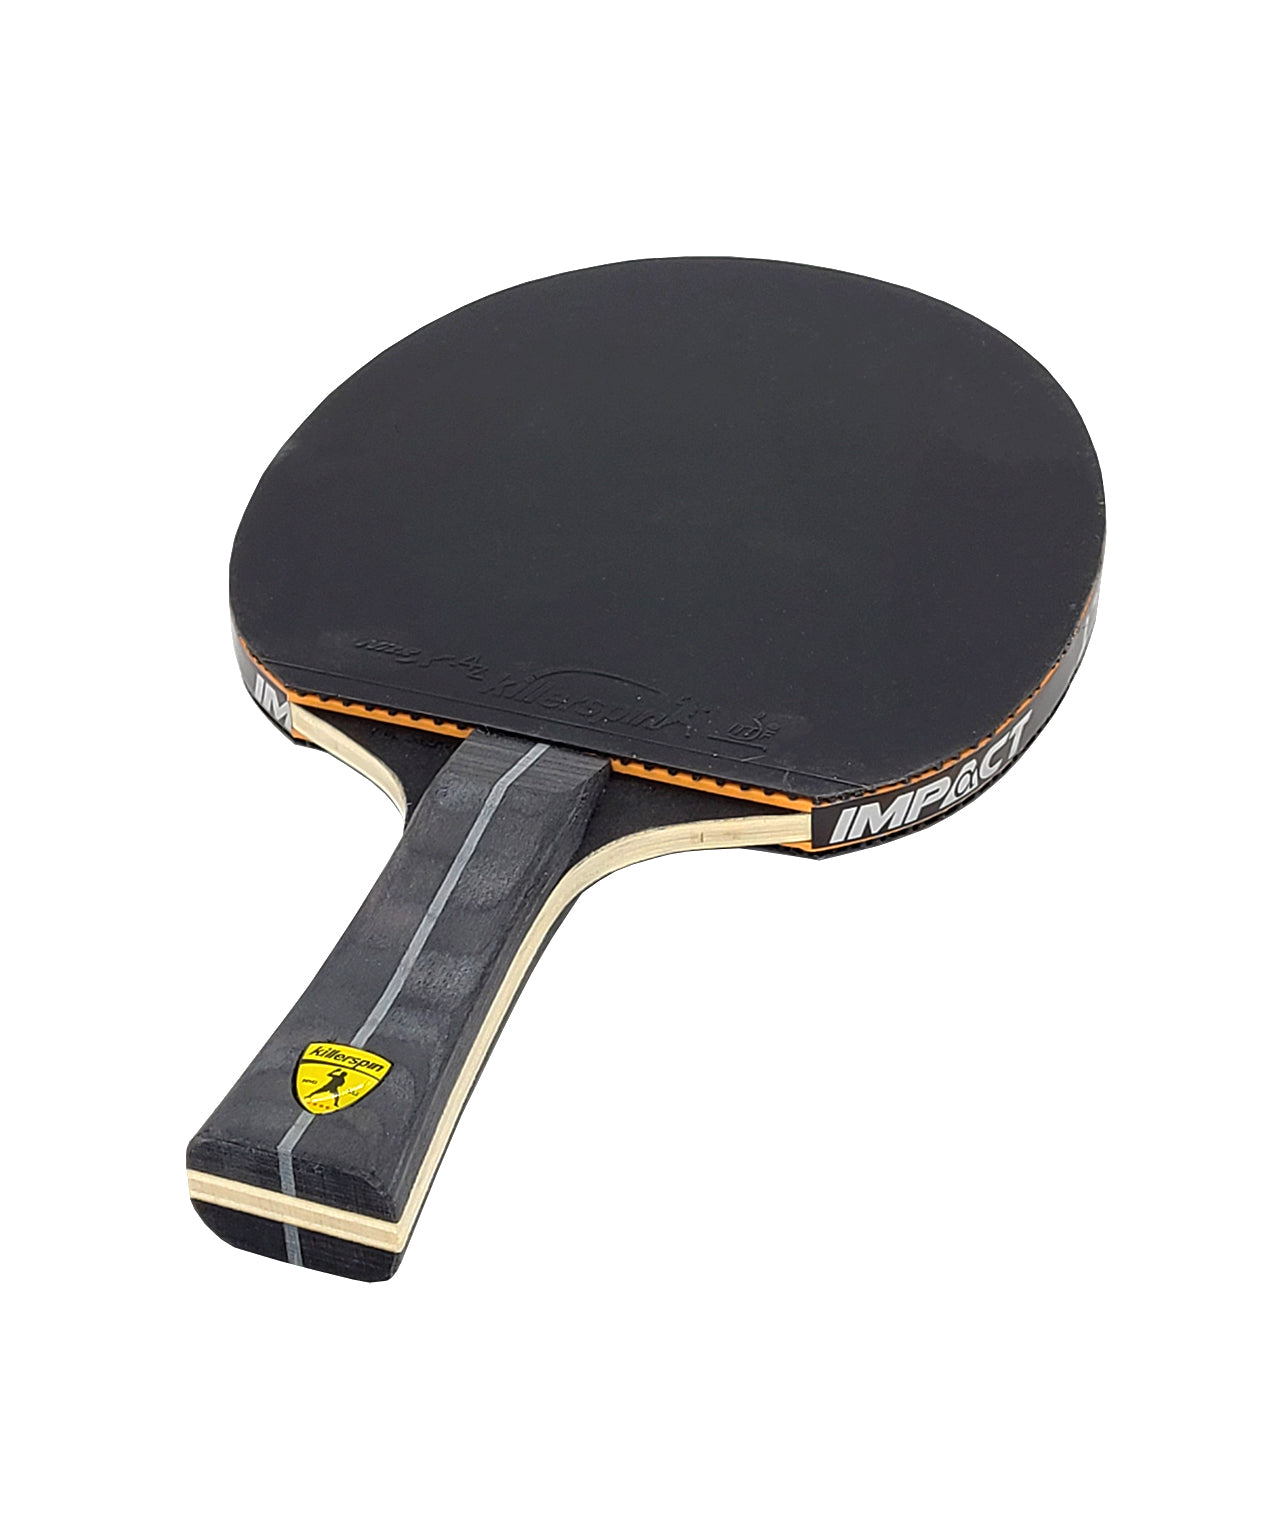 killerspin-ping-pong-paddle-impact-D9-smart-grip-memory-book-paddle-rubber